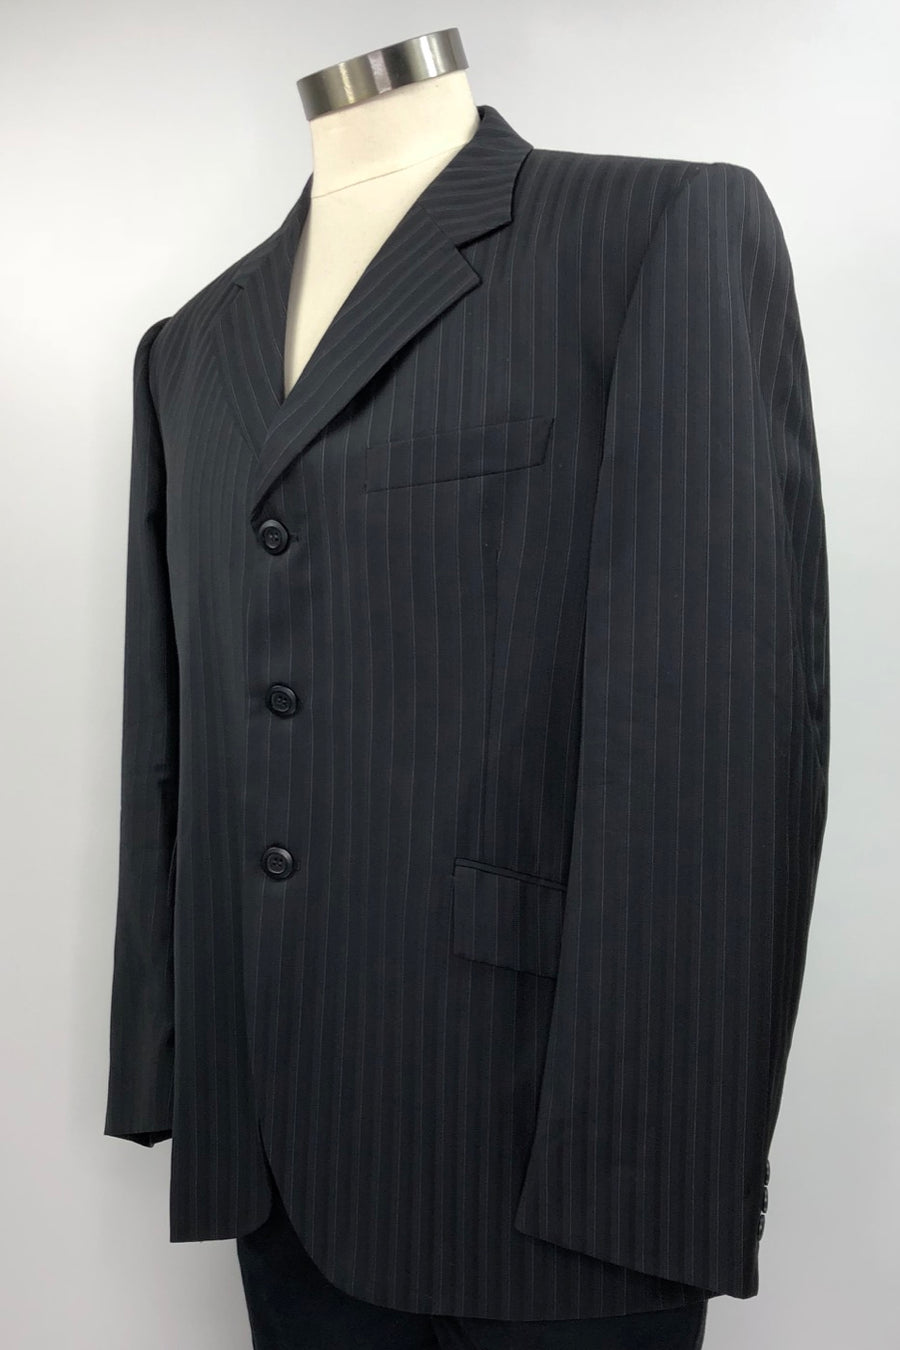 Grand Prix Hunt Coat in Black Pinstripe -Left Side View